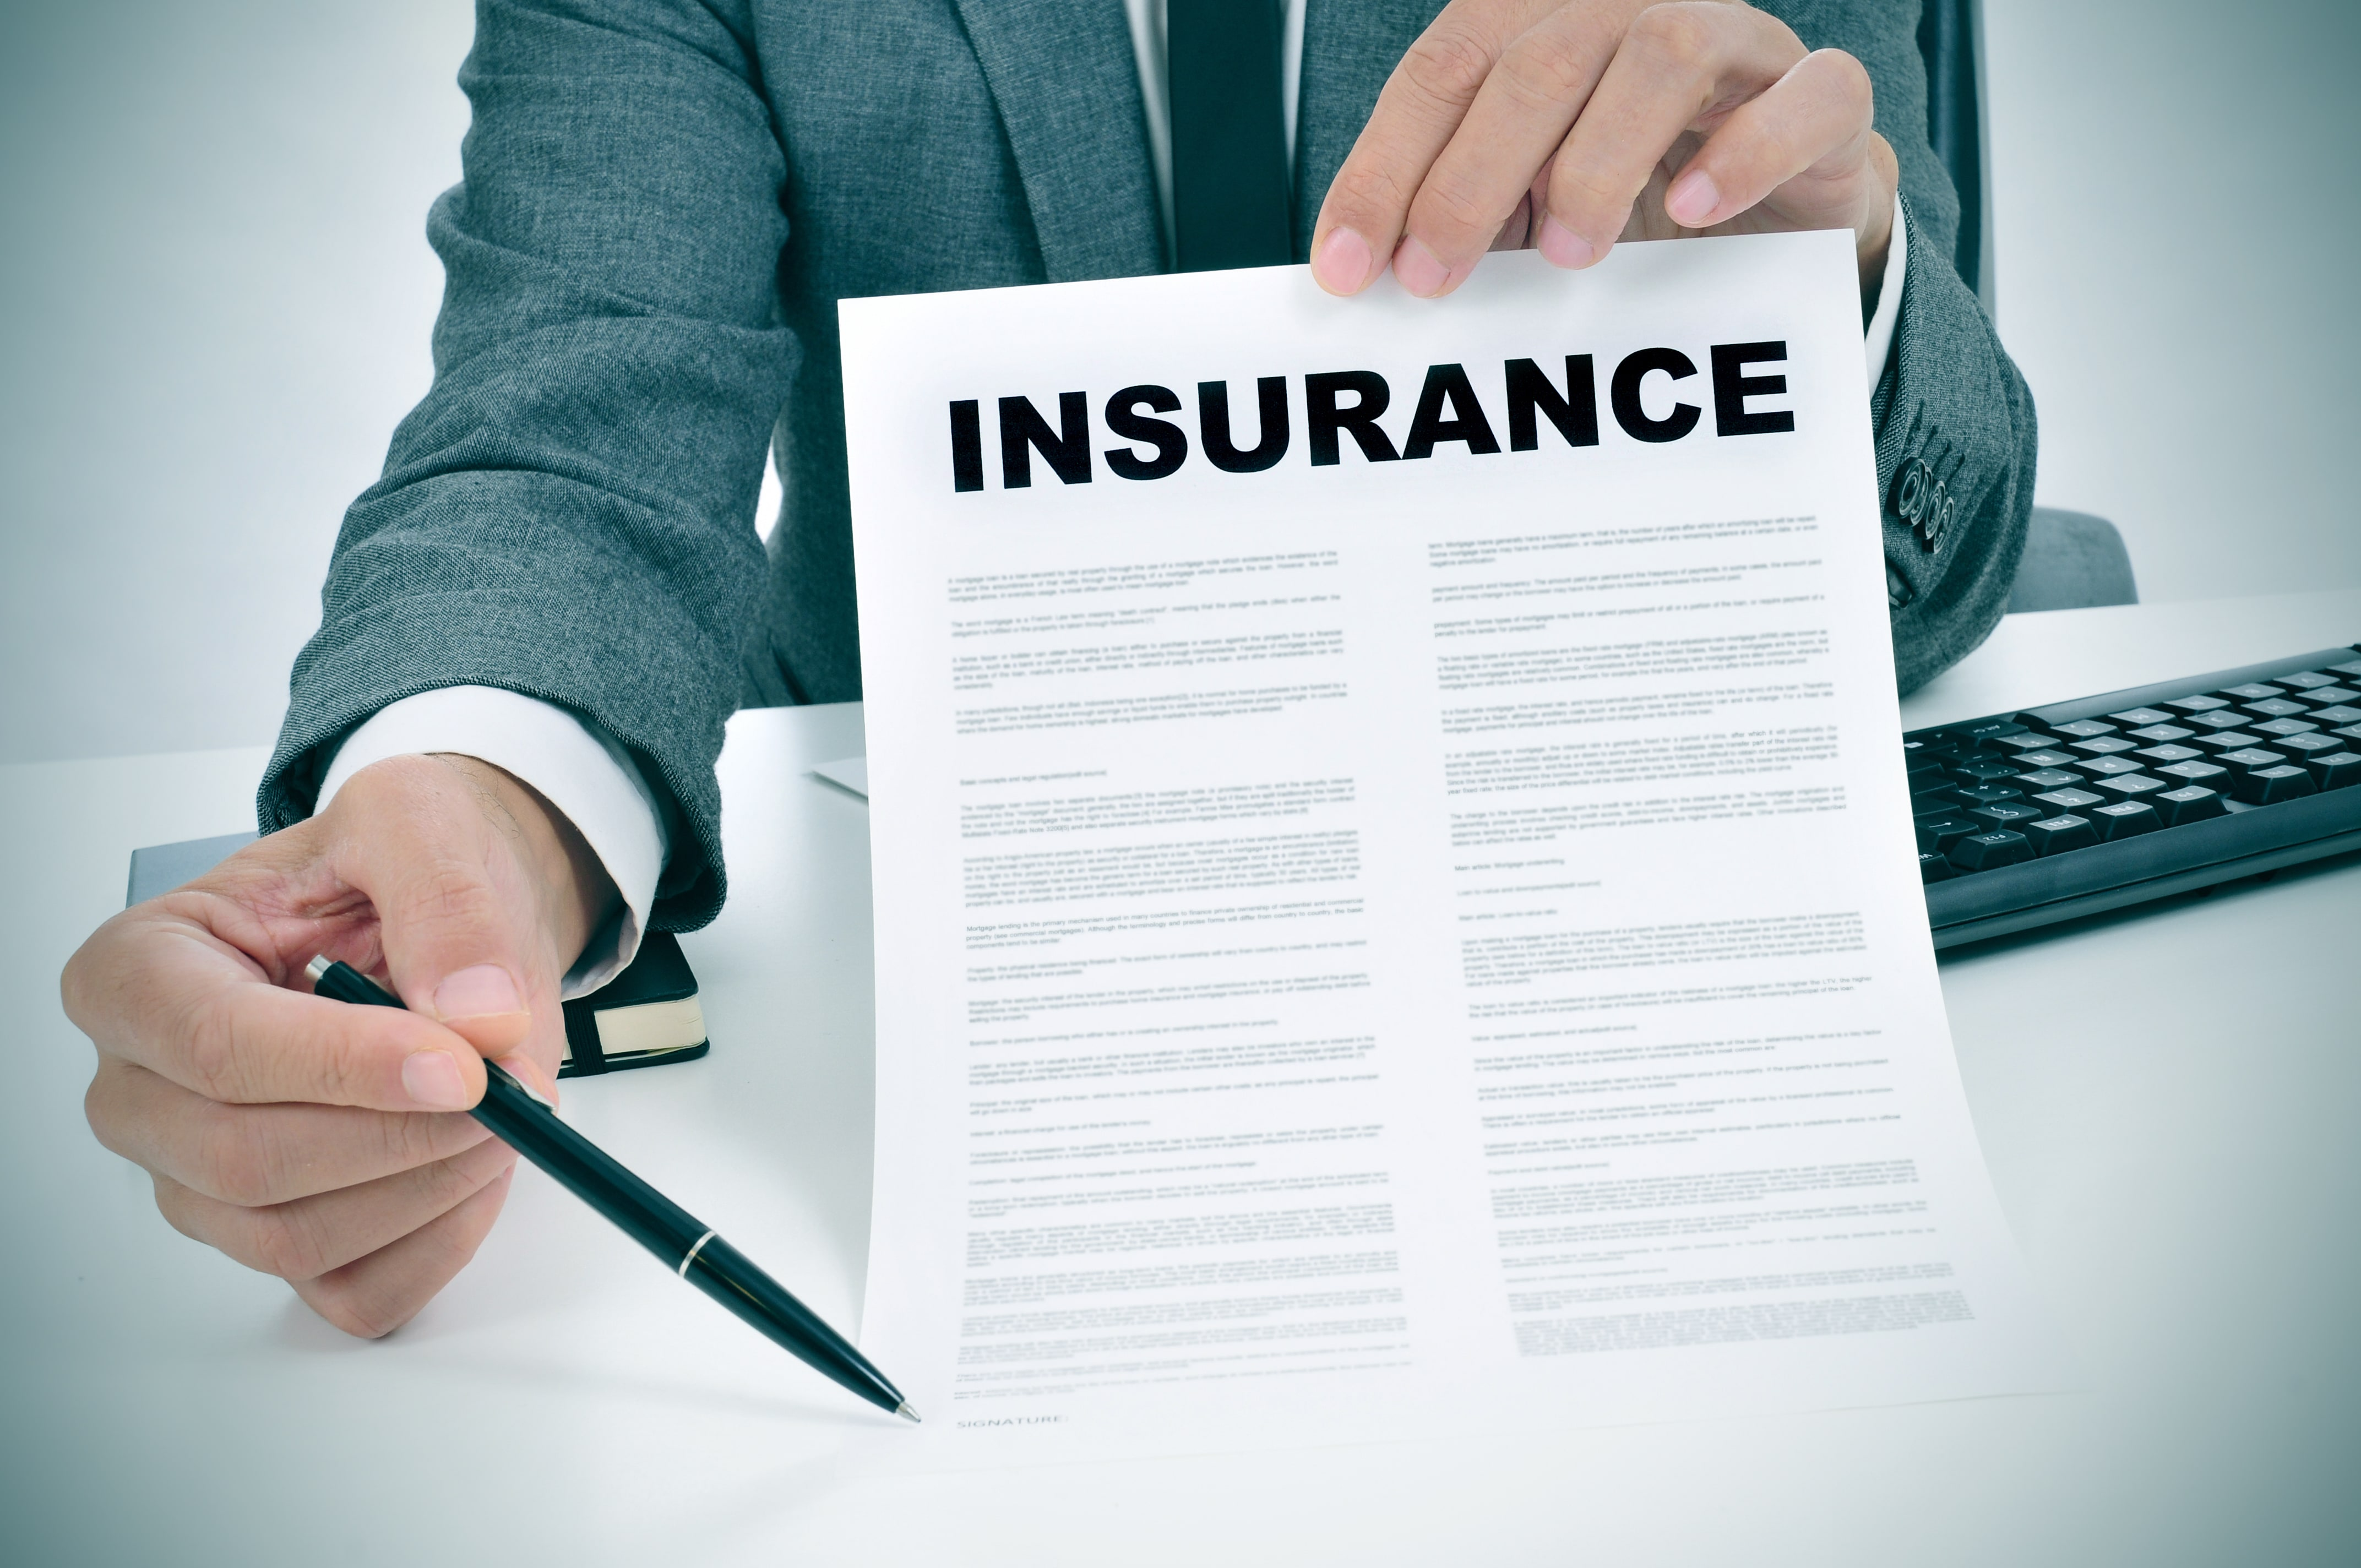 The Main Life Insurance Benefit You Can Look For in an Insurance Policy